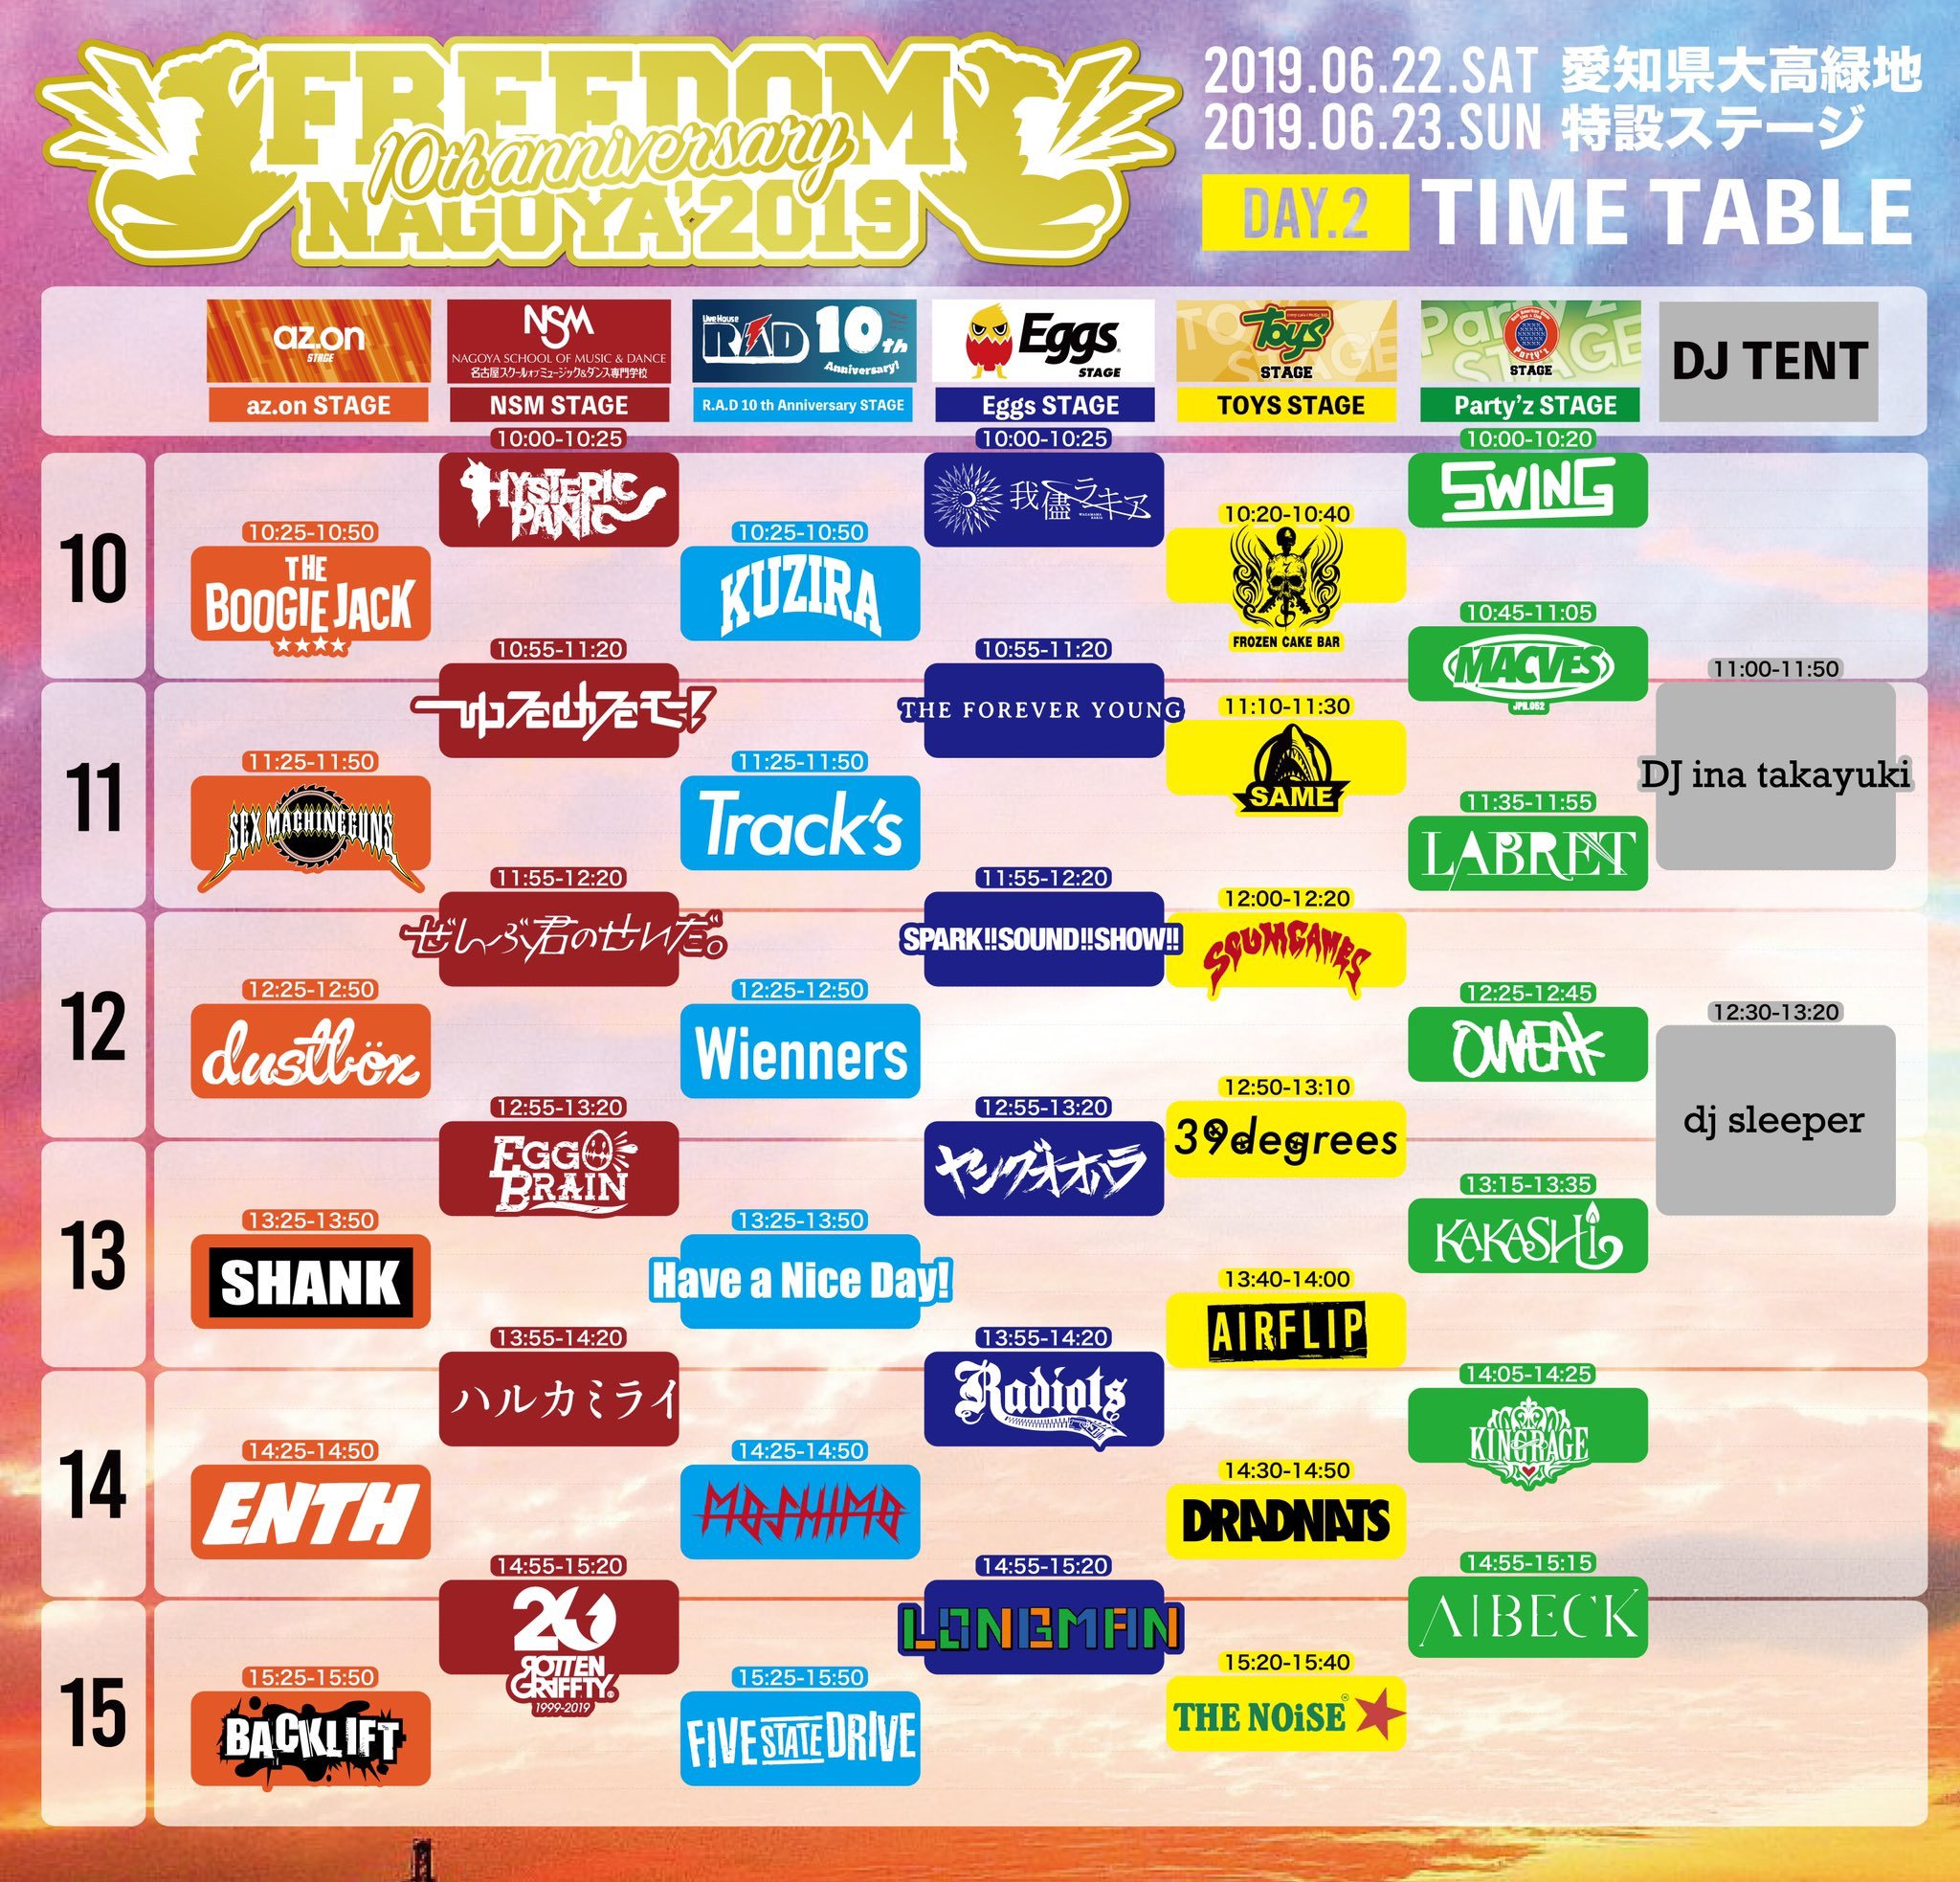 FREEDOM NAGOYA 2019 Day2